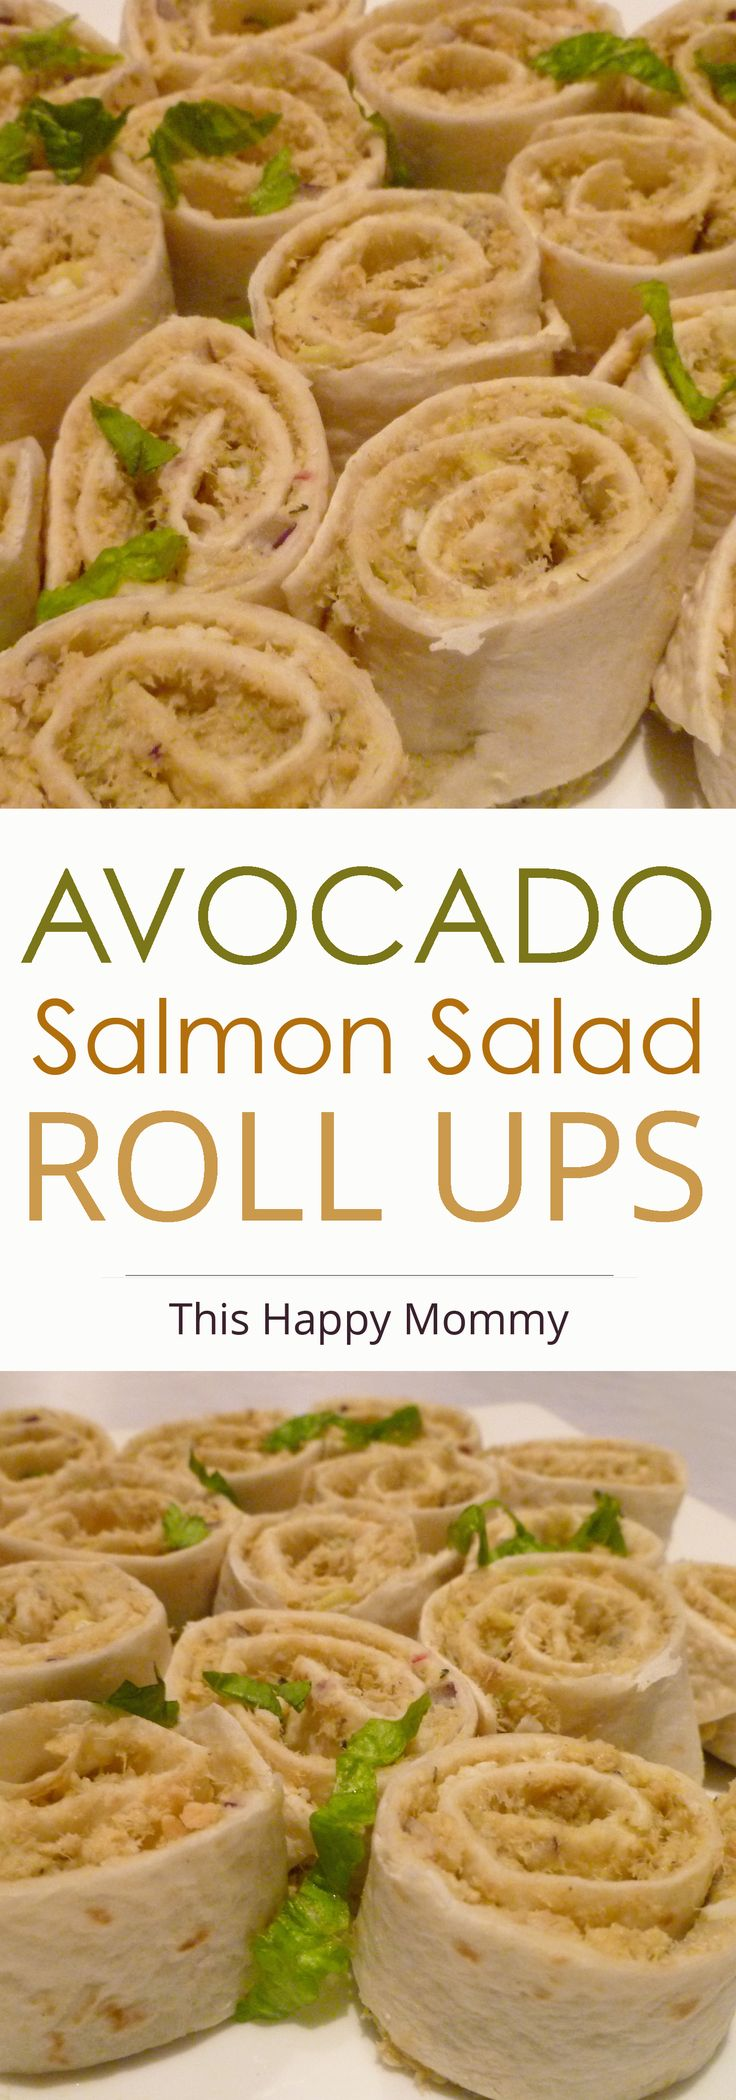 Avocado Salmon Salad Roll Ups -- Healthy salmon salad sandwiches made with creamy avocado, hard boiled egg, red onion, lemon, and dill. | thishappymommy.com